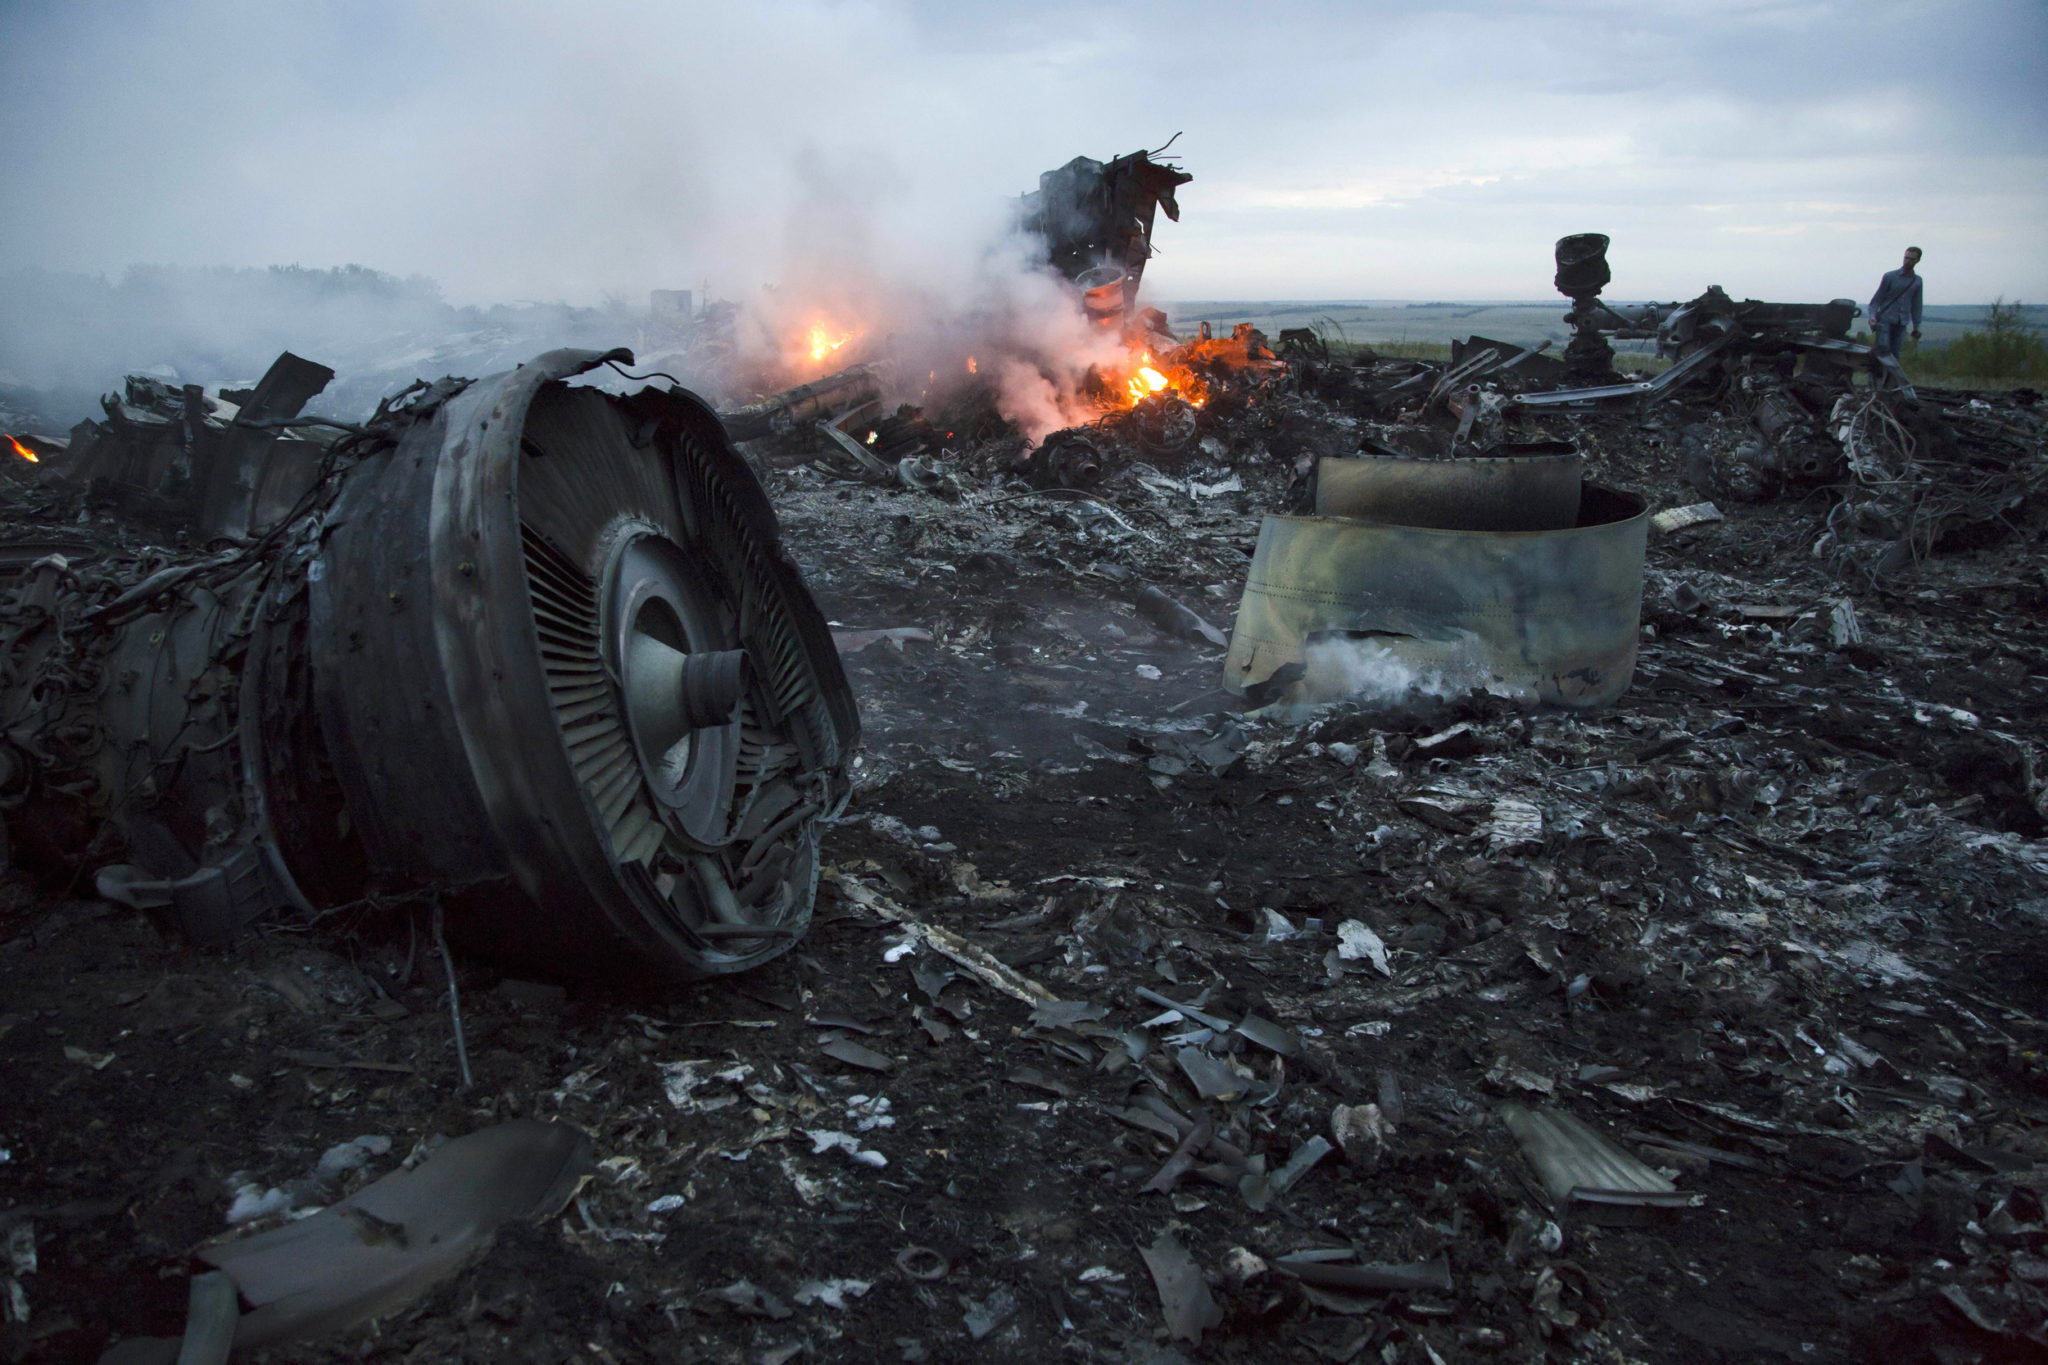 MH17 Team Wants Probe on Russian Line of Command